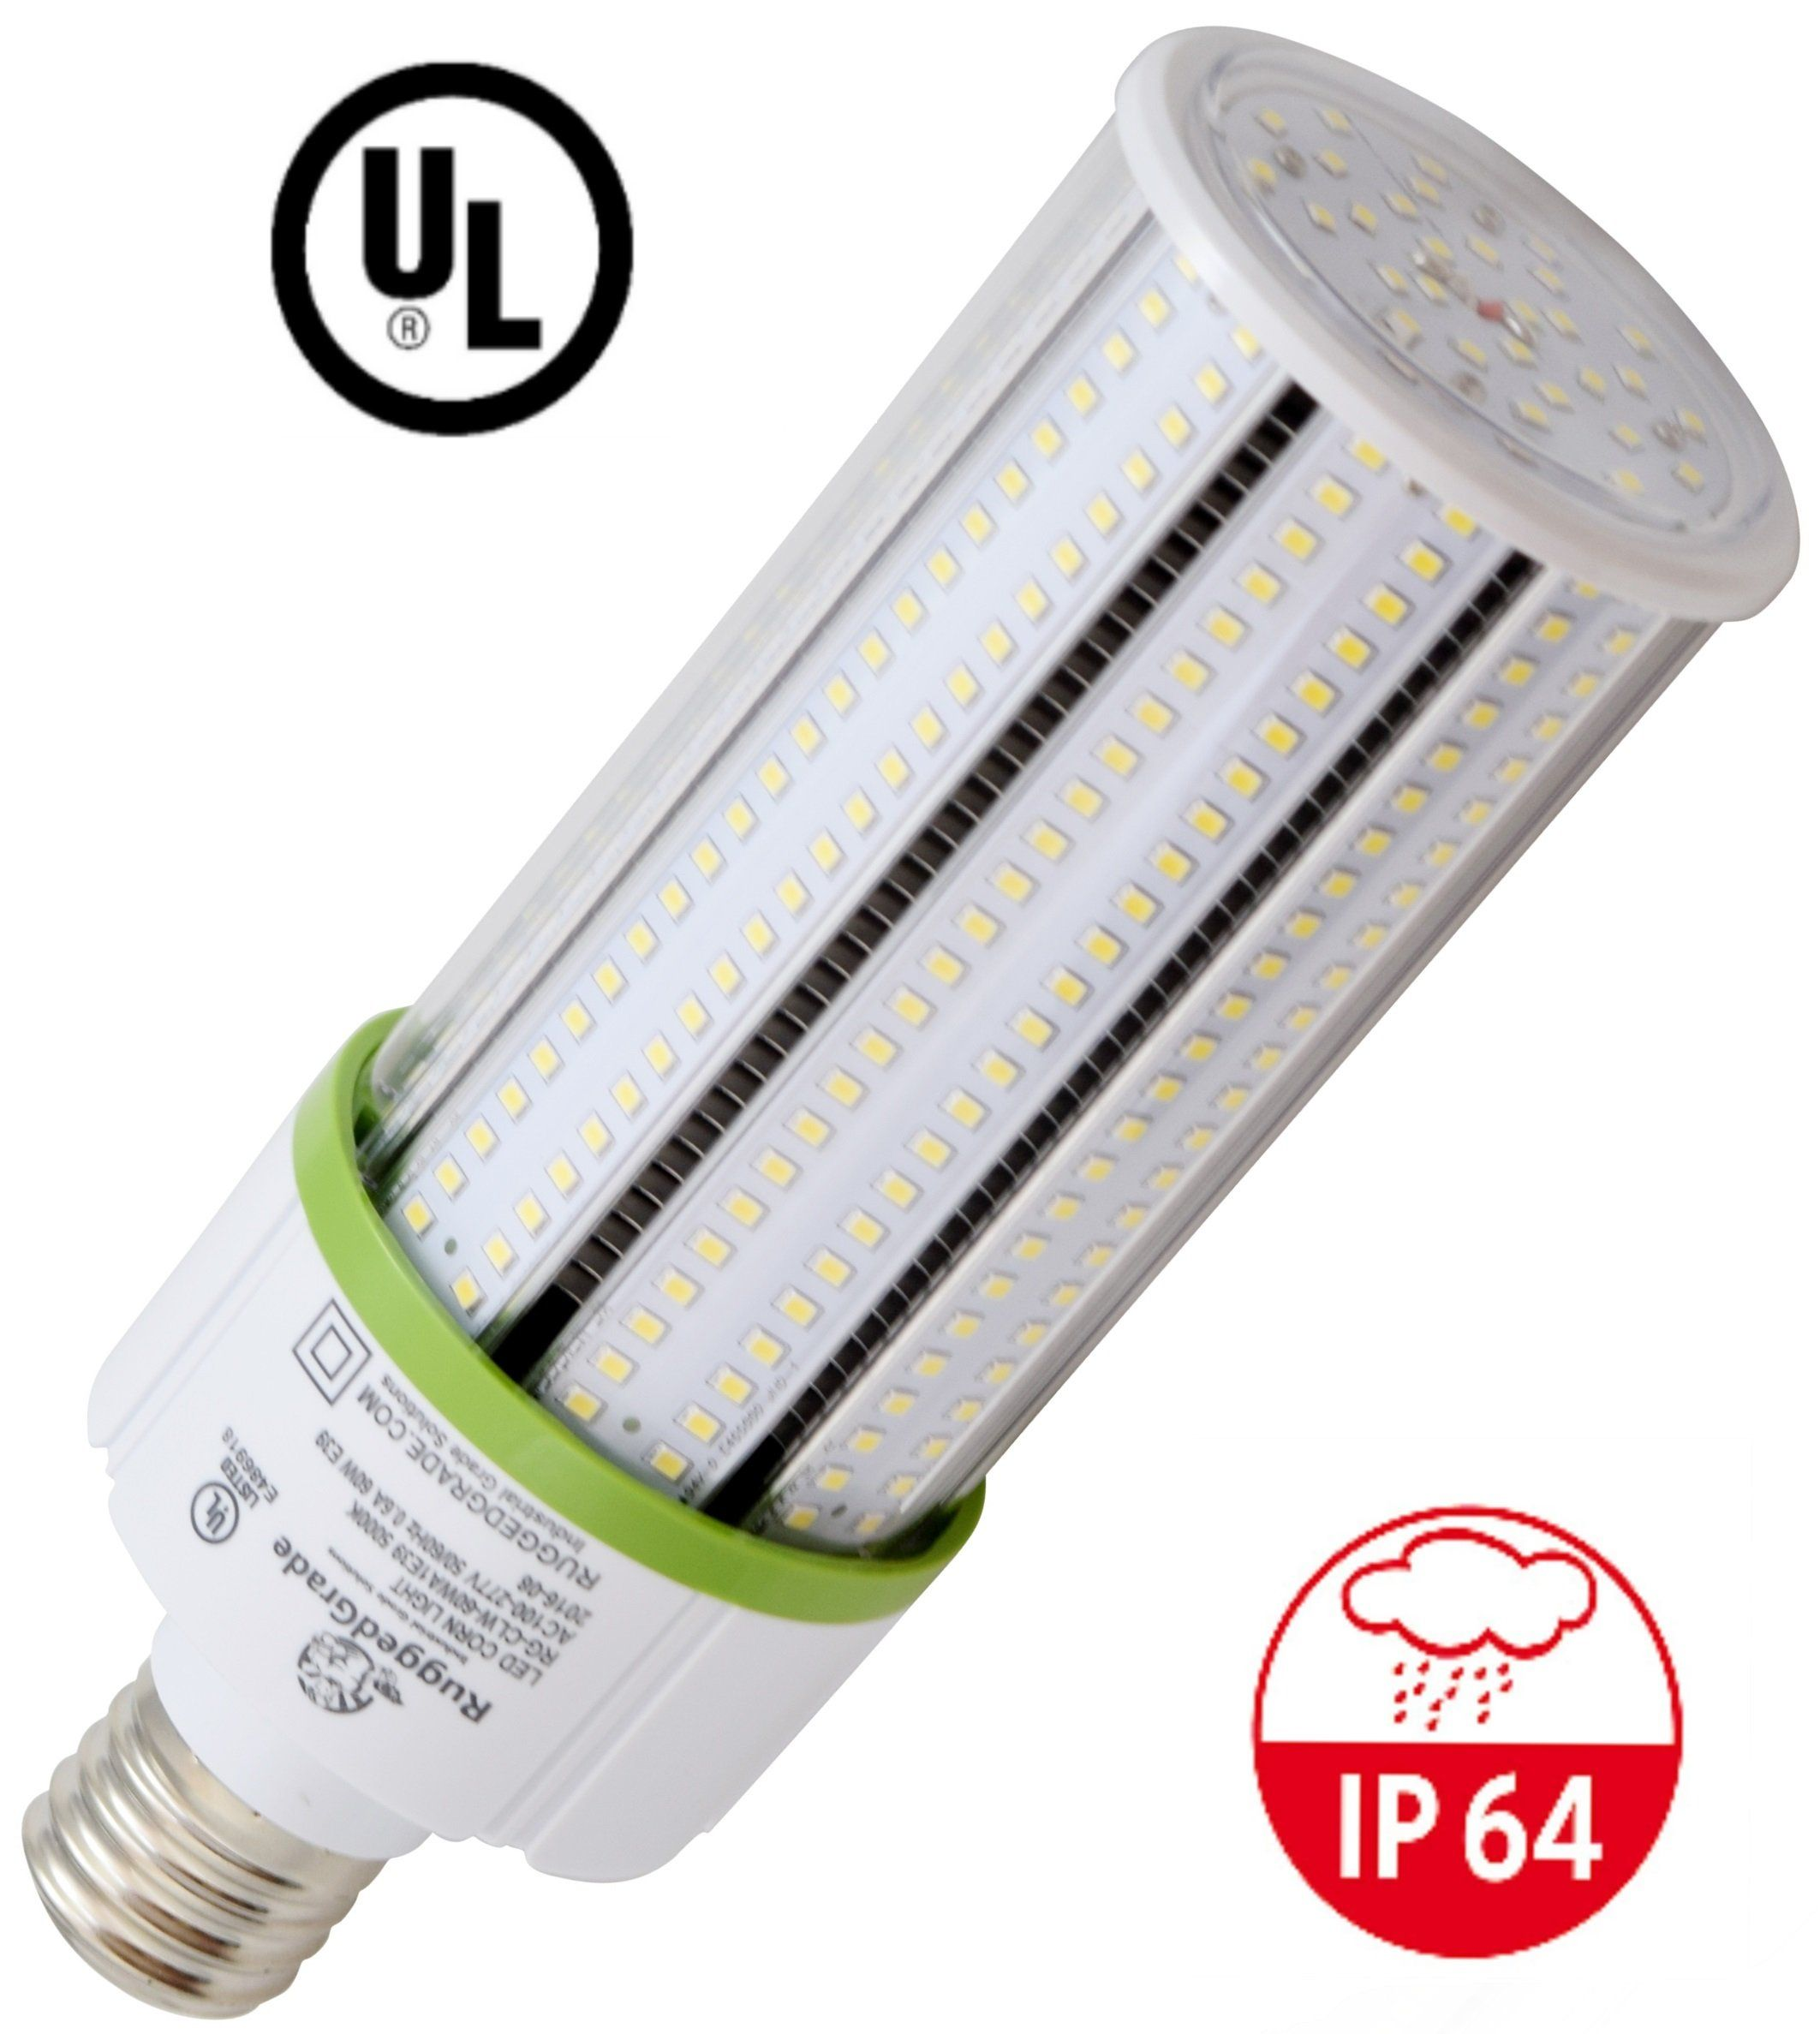 bulbs different and connectivity in builder emagazine cfl light techome lifespan right bulb lighting part how choosing the rank articles efficiency